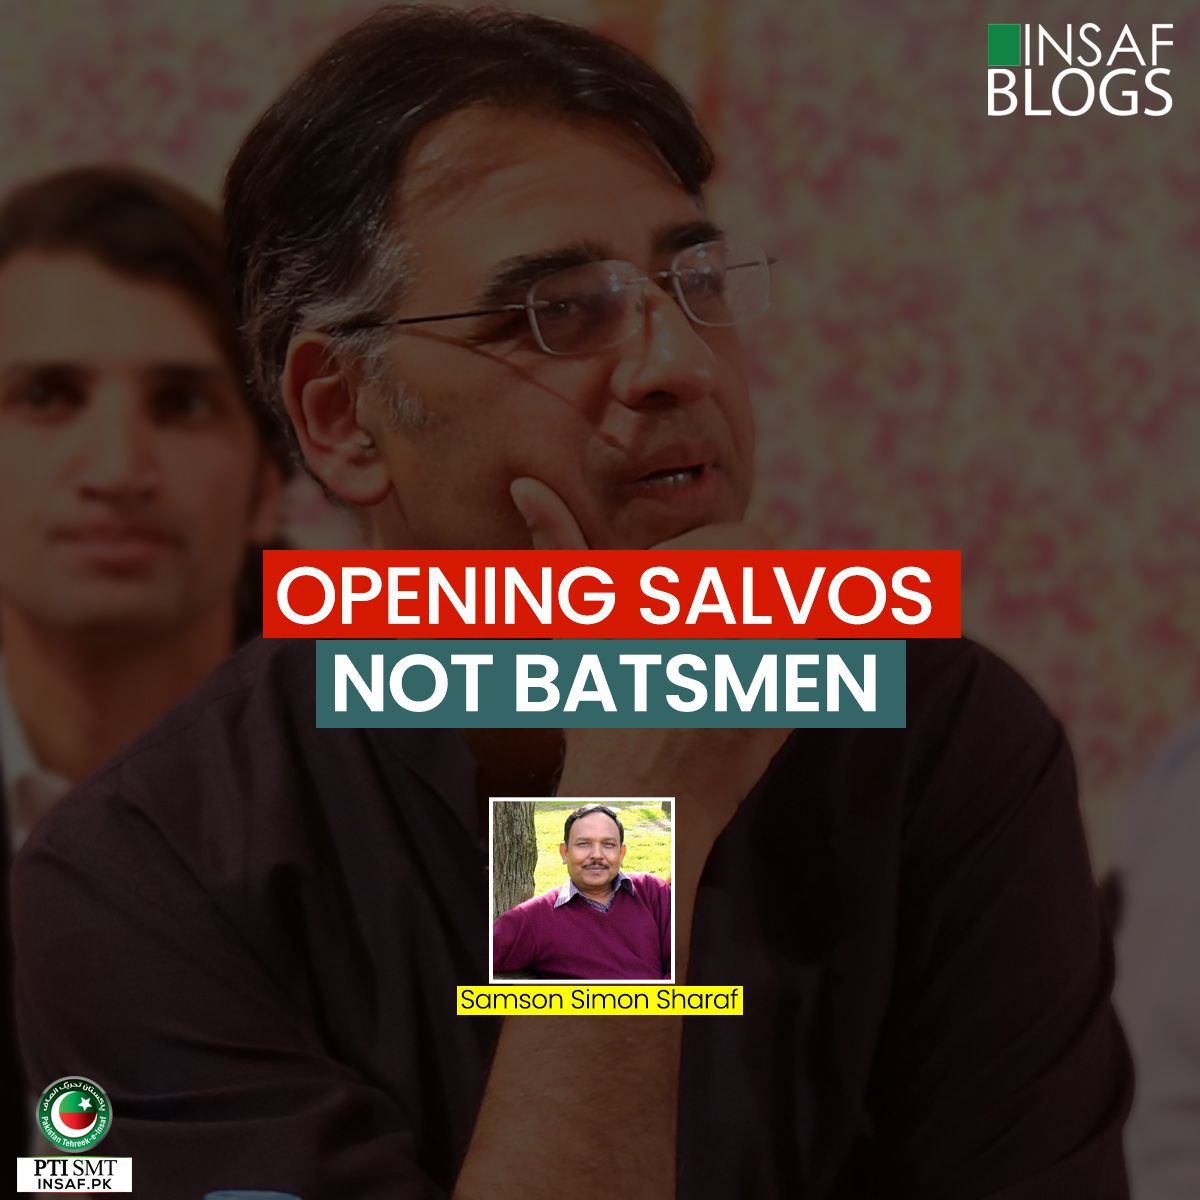 OPENING SALVOS NOT BATSMEN - Insaf-Blog